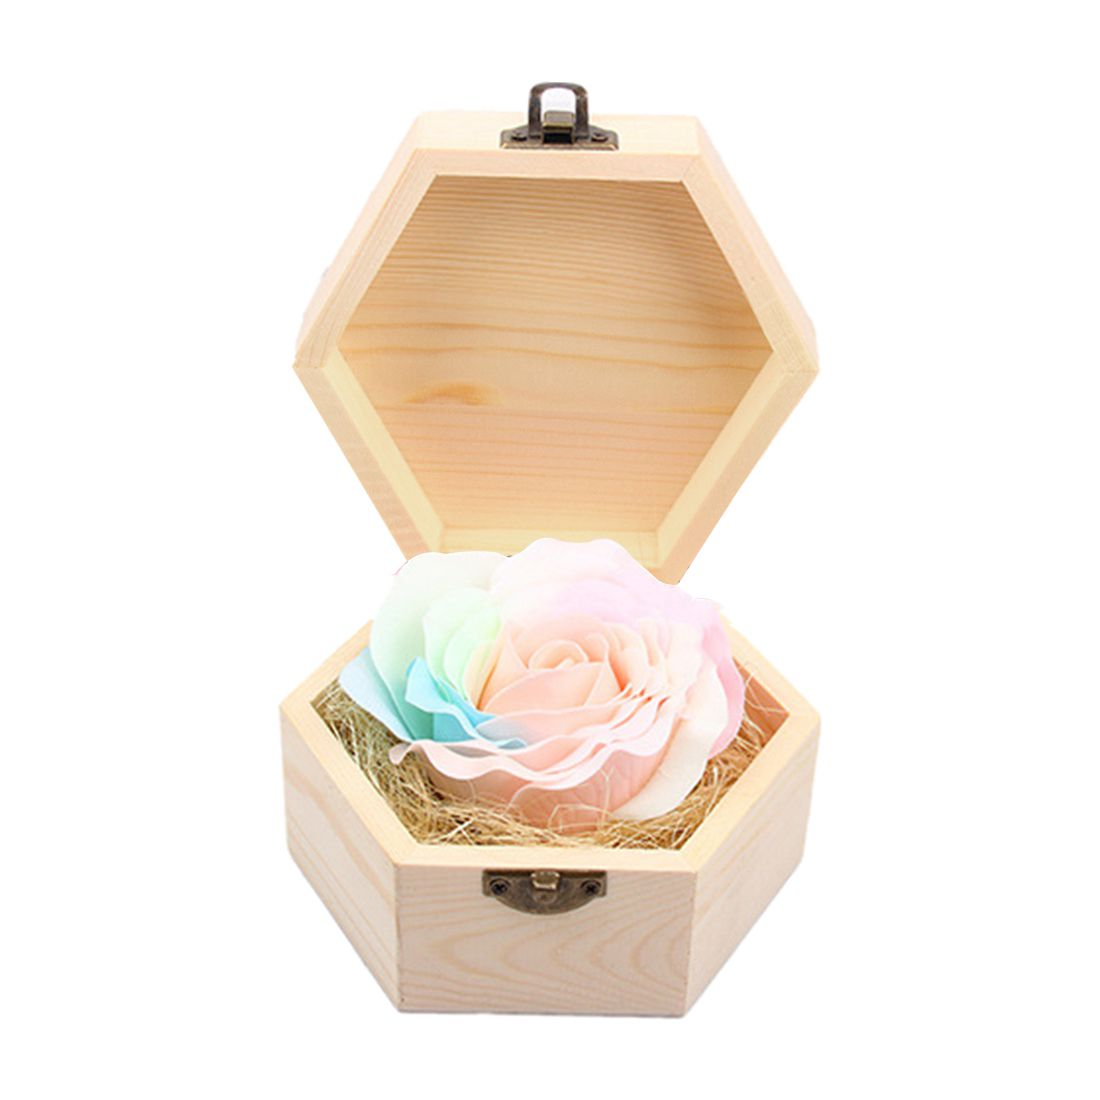 Affordable Wedding Gift: New Affordable Soap Flowers Gift Box For Birthday Gifts